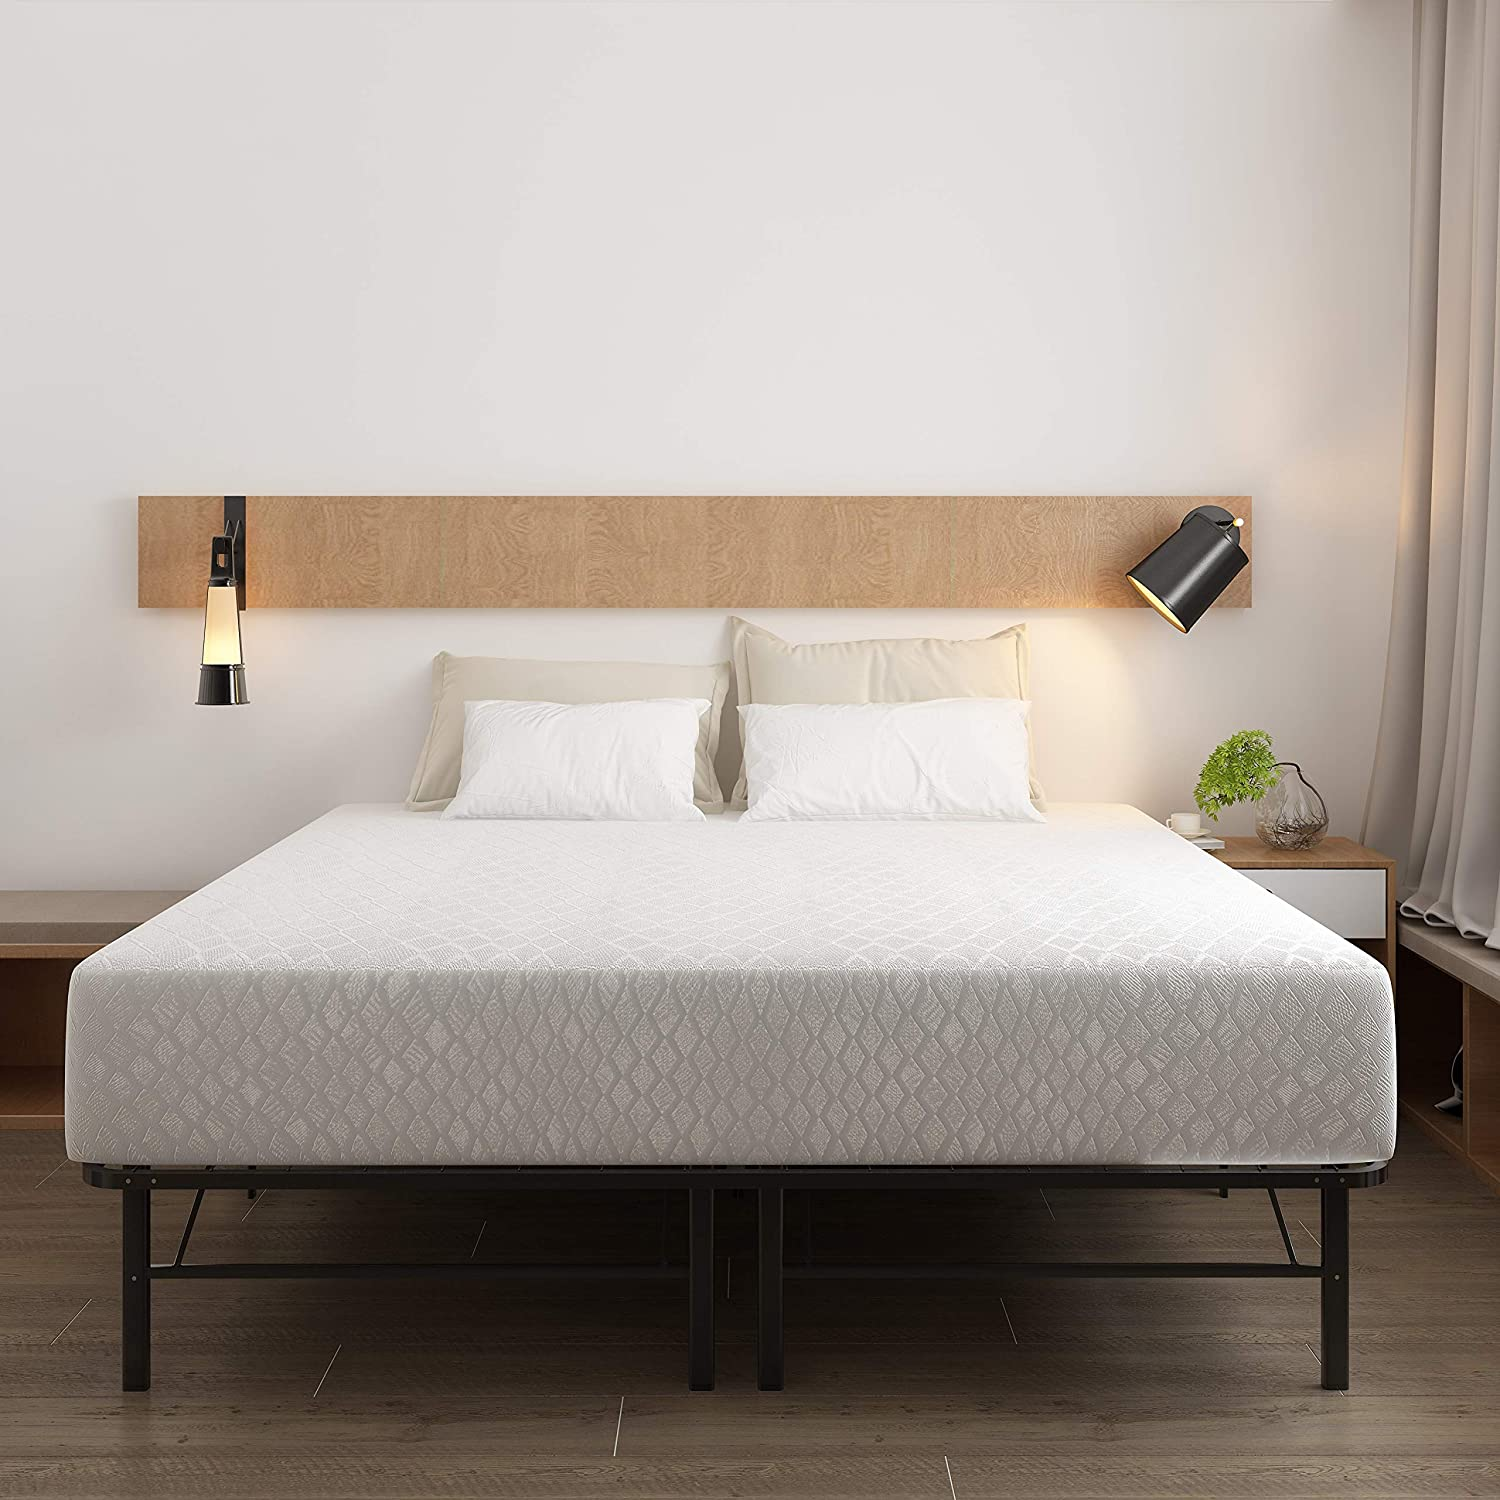 Signature Design by Ashley 12 Inch Memory Foam Mattress with Better Than a Boxspring Adjustable Base - King